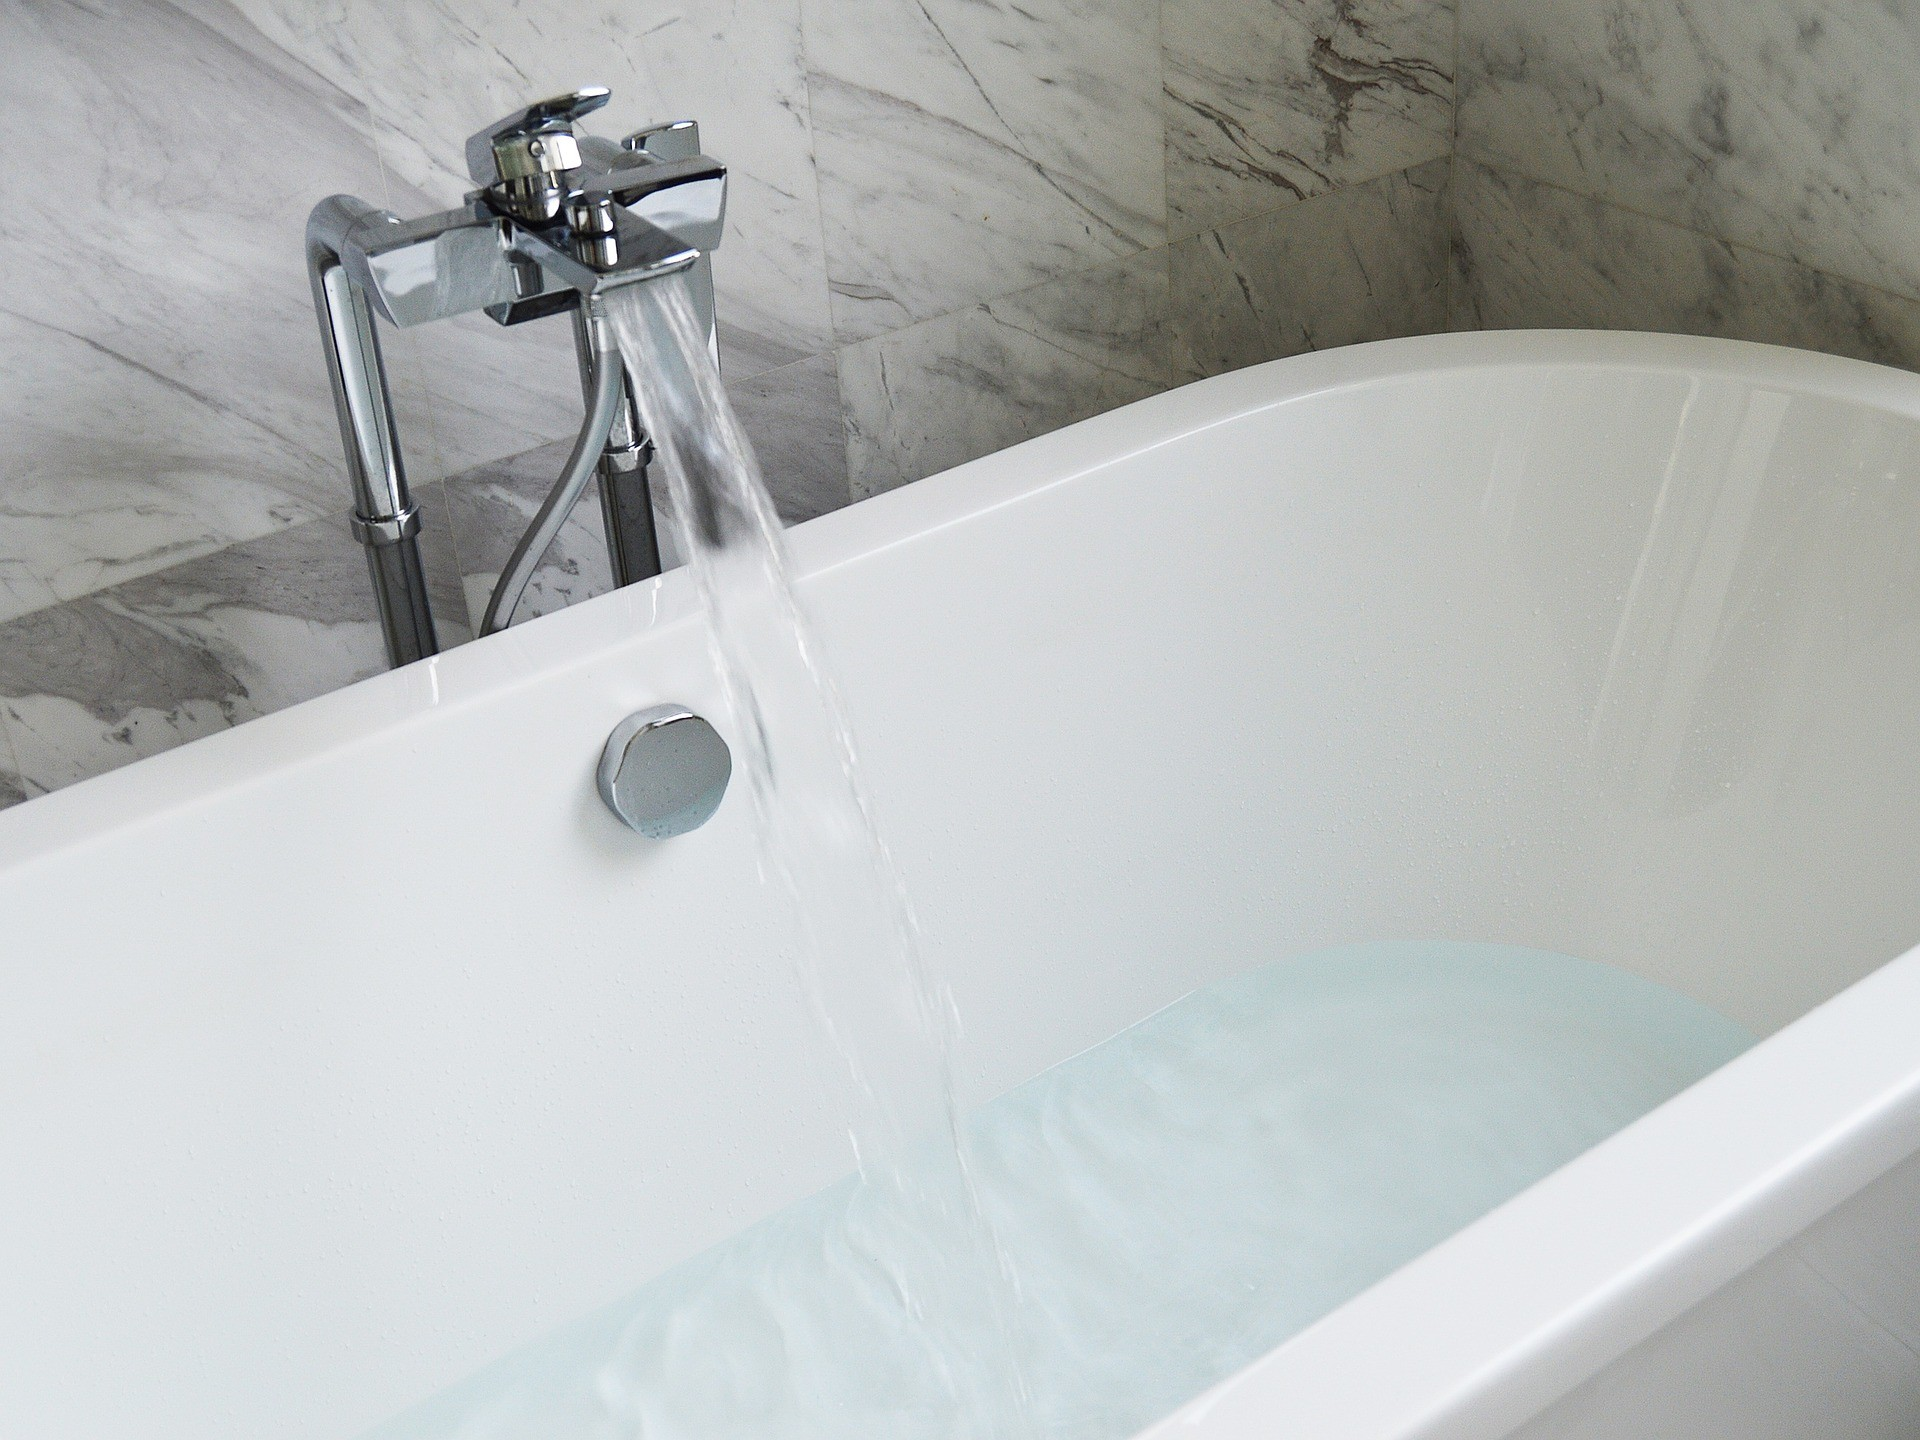 Palm Beach Bath Tub Reglazing & Tub Resurfacing Contractors-We do Water Bathroom Bathtub Reglazing, Bathtub Refinishing, Tub Resurfacing, Bathtub Restoration, Countertop Resurfacing, Ceramic Tile Refinishing, Acid Free Reglazing, Commercial Bathroom Reglazing, and more